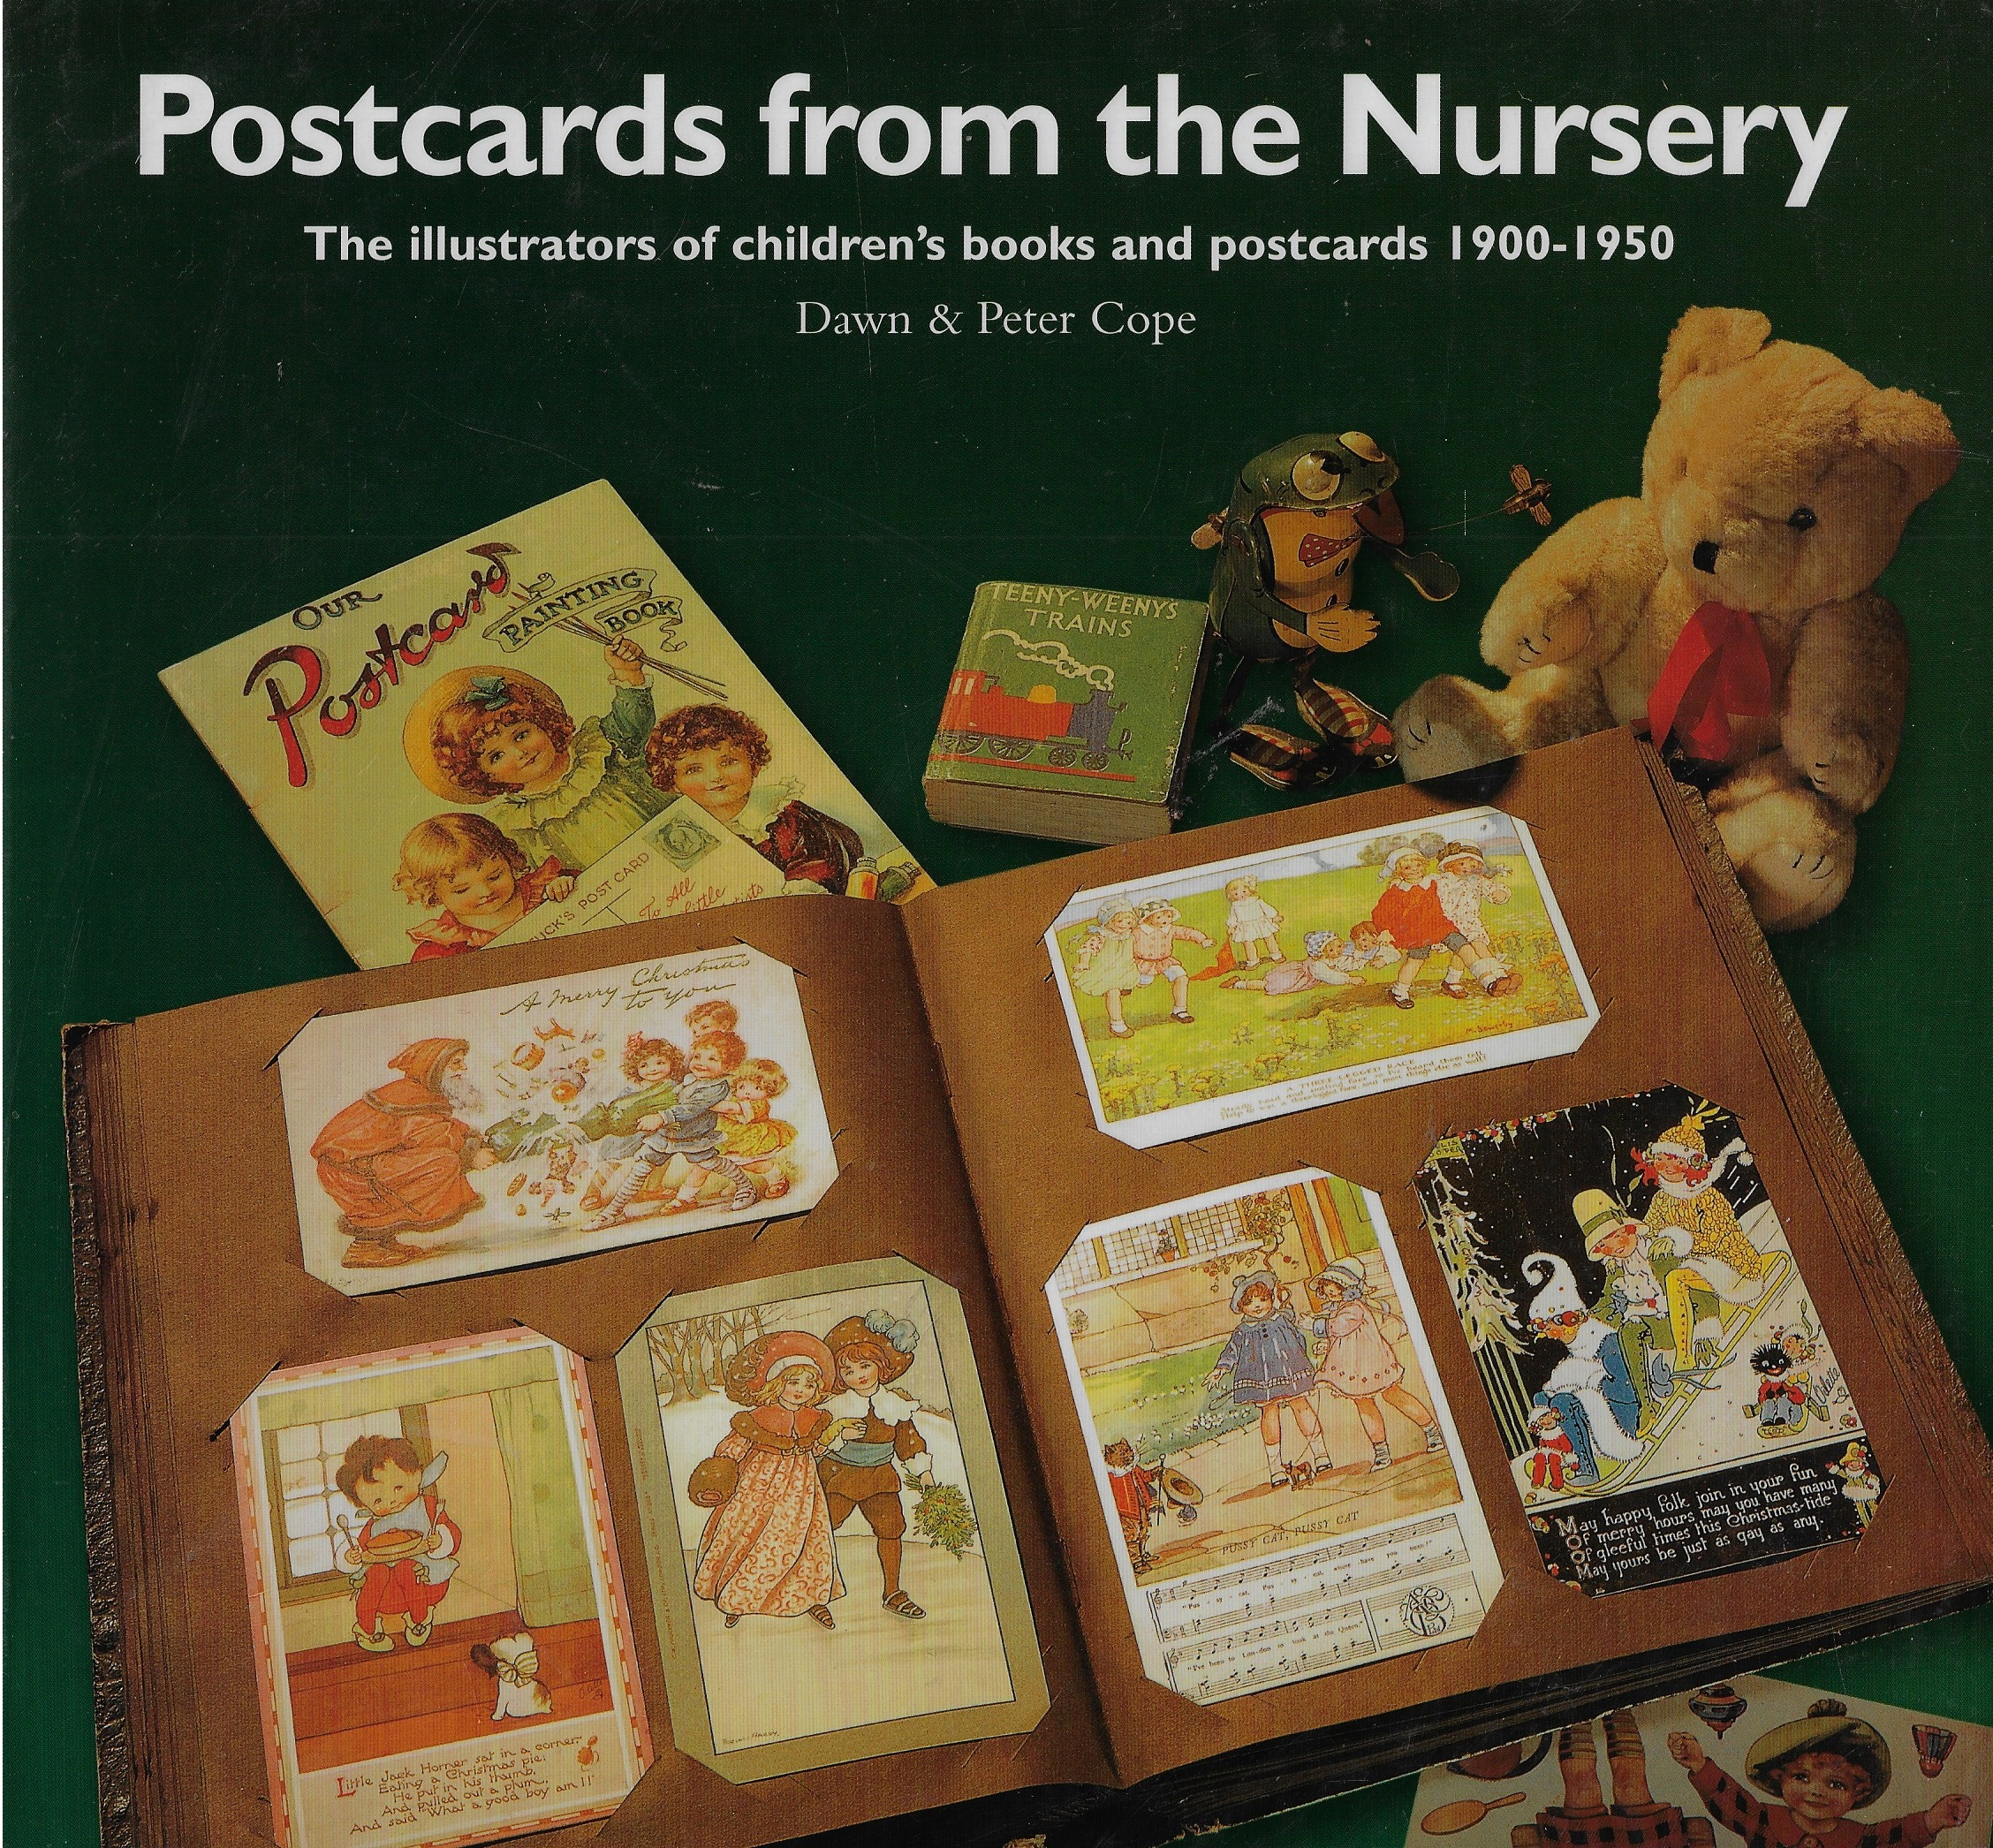 Image for Postcards from the Nursery The Illustrators of Children's Books and Postcards 1900-1950